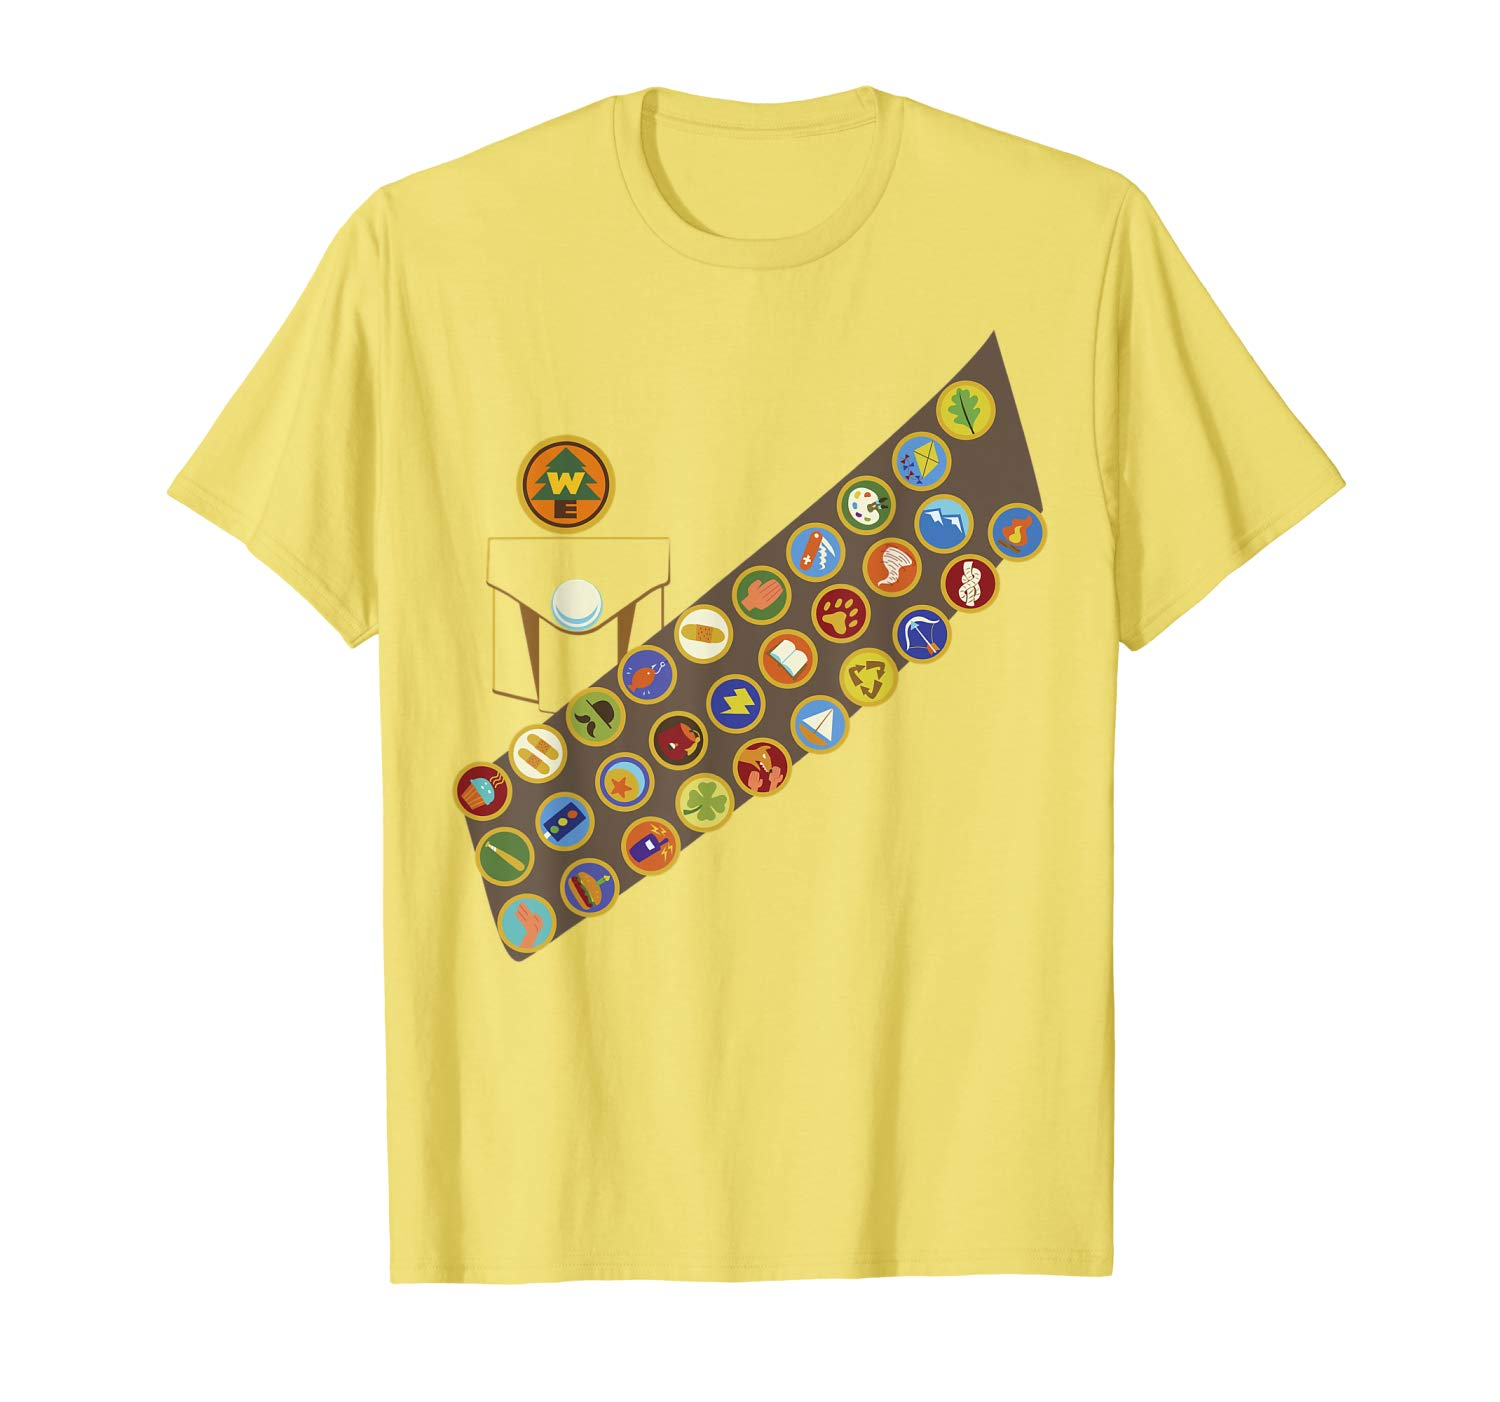 Disney Pixar Up Russell Patches Halloween Graphic T Shirt